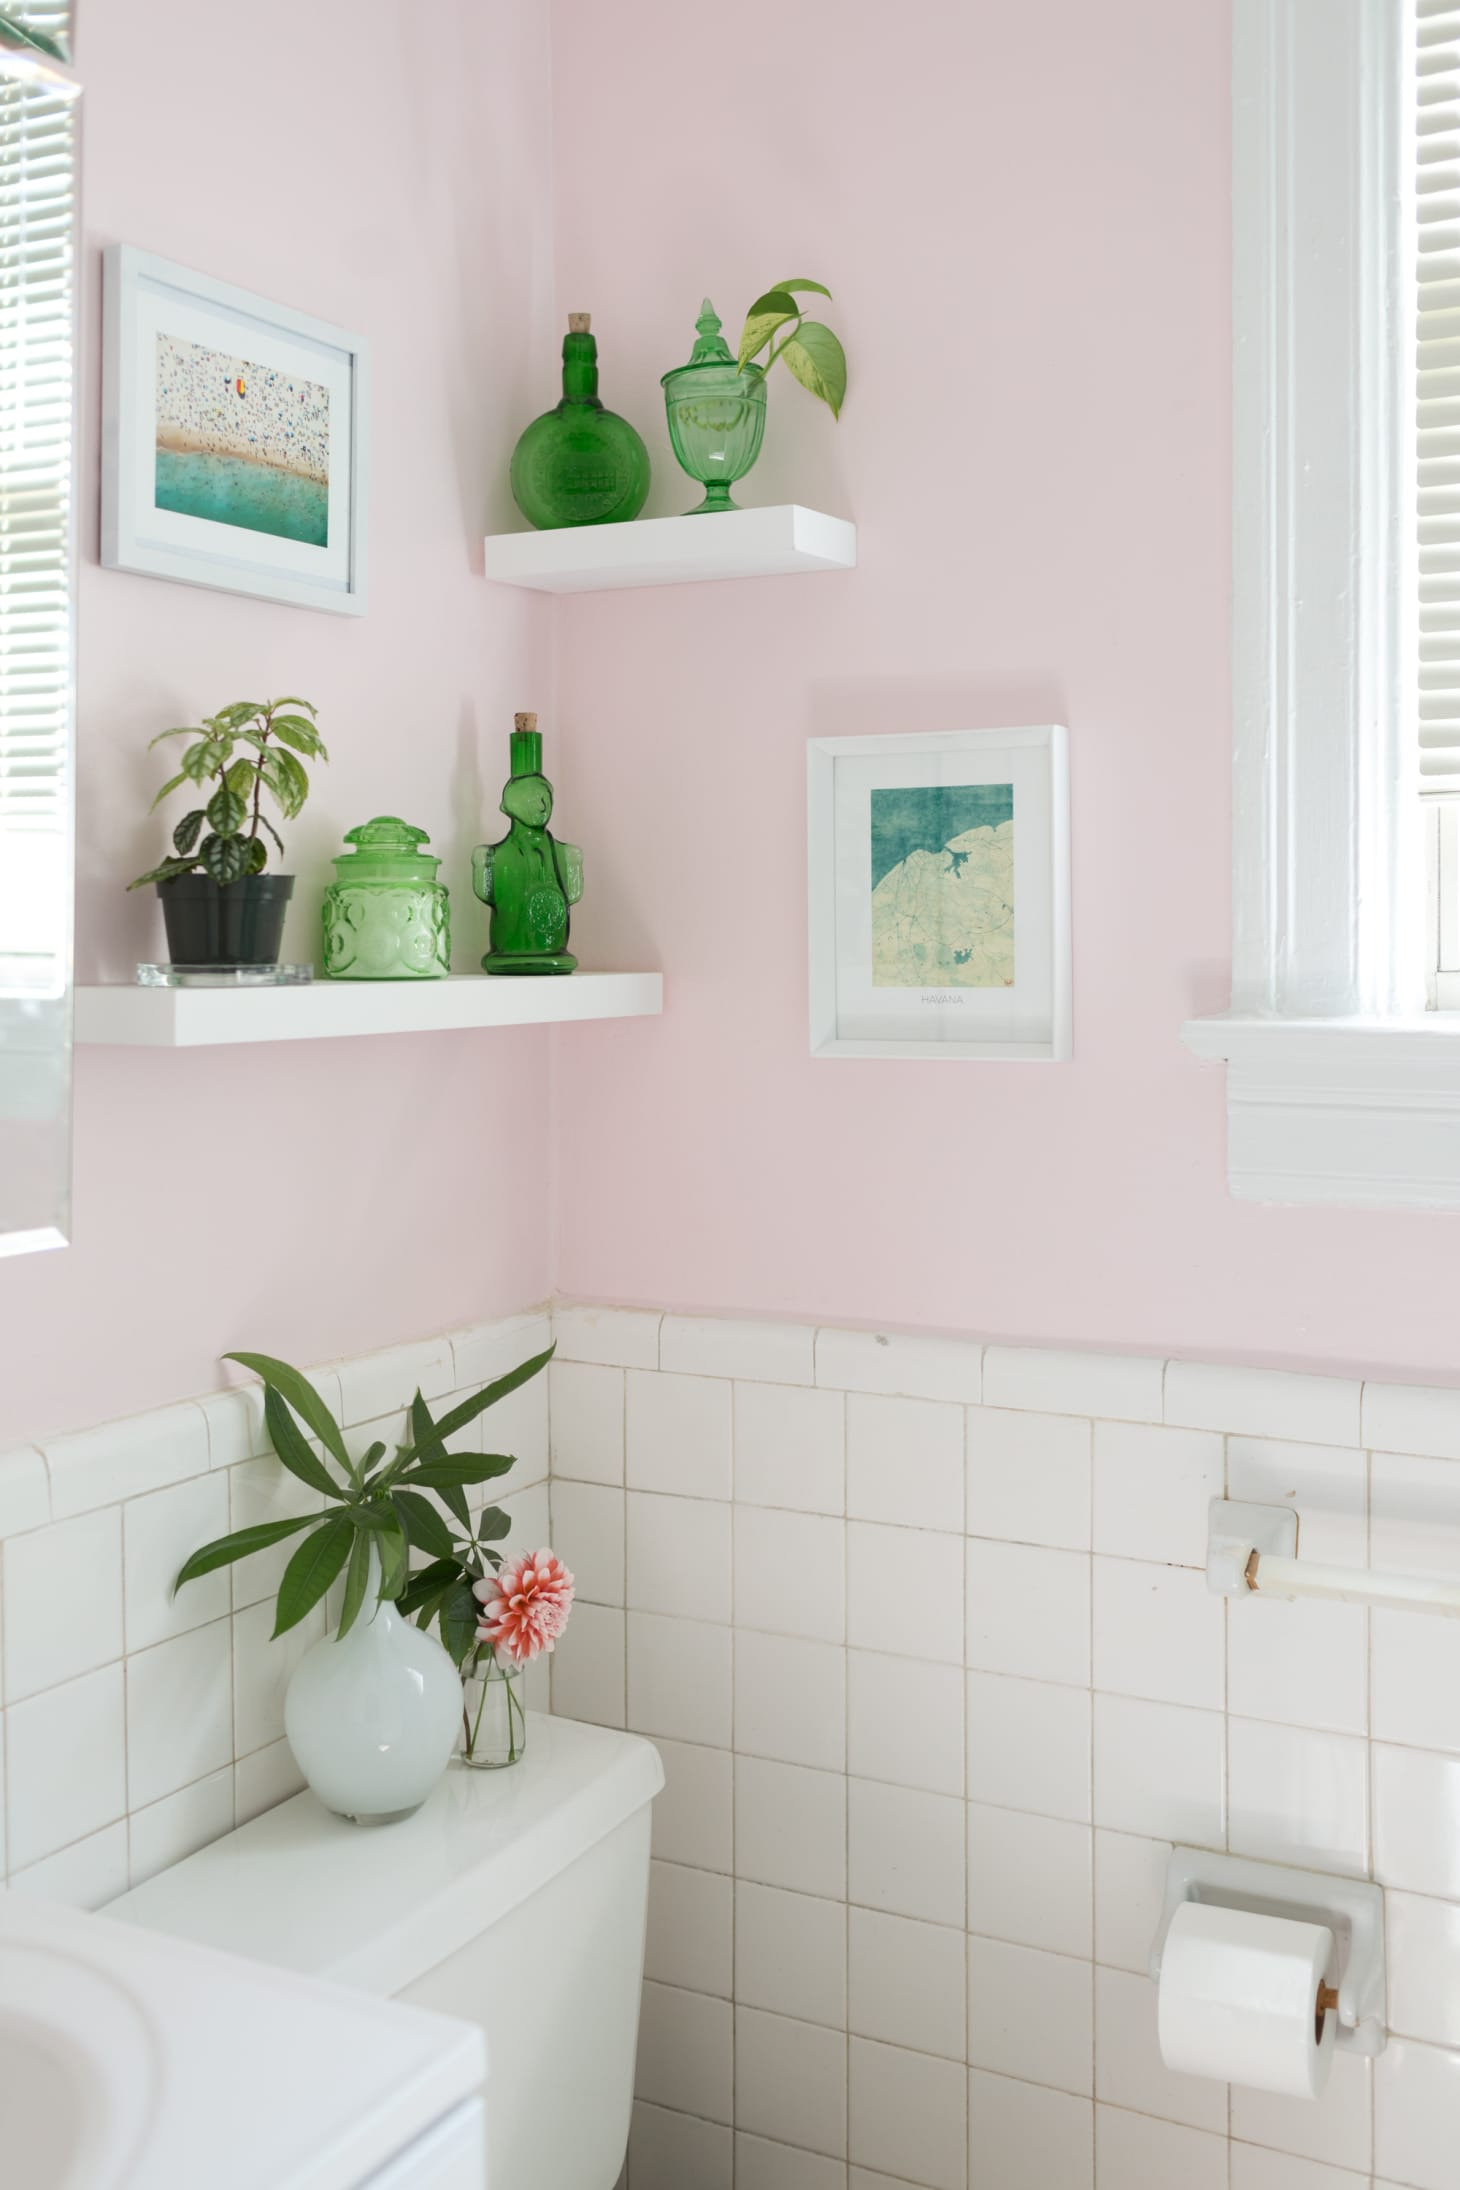 Decor Ideas for Small Bathrooms Beautiful 50 Best Small Bathroom Decorating Ideas Tiny Bathroom